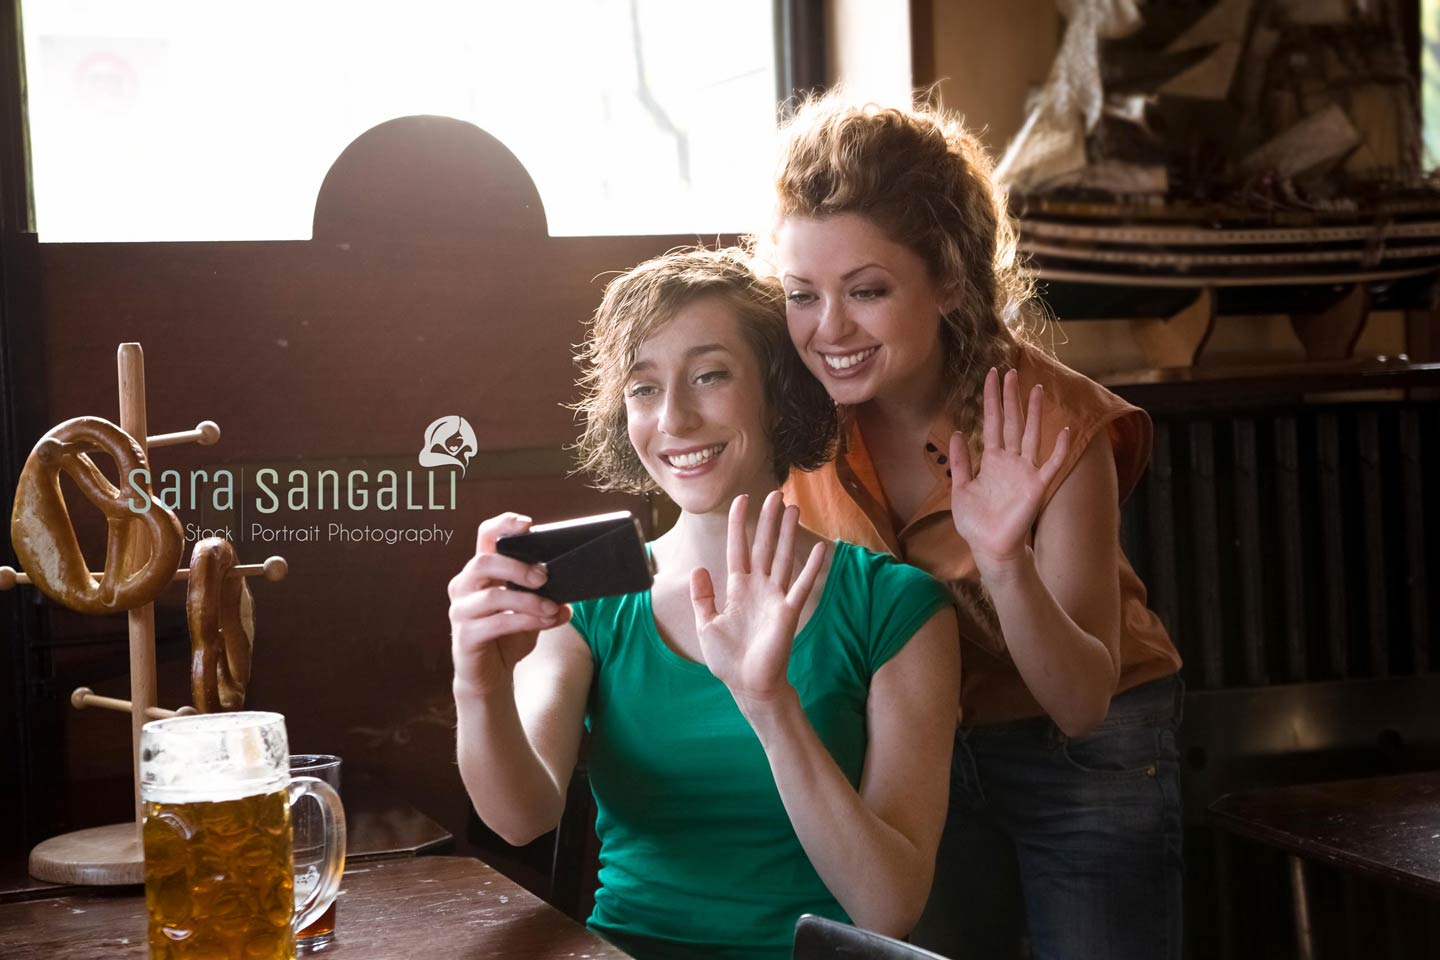 Two girlfriend waving at their smartphone